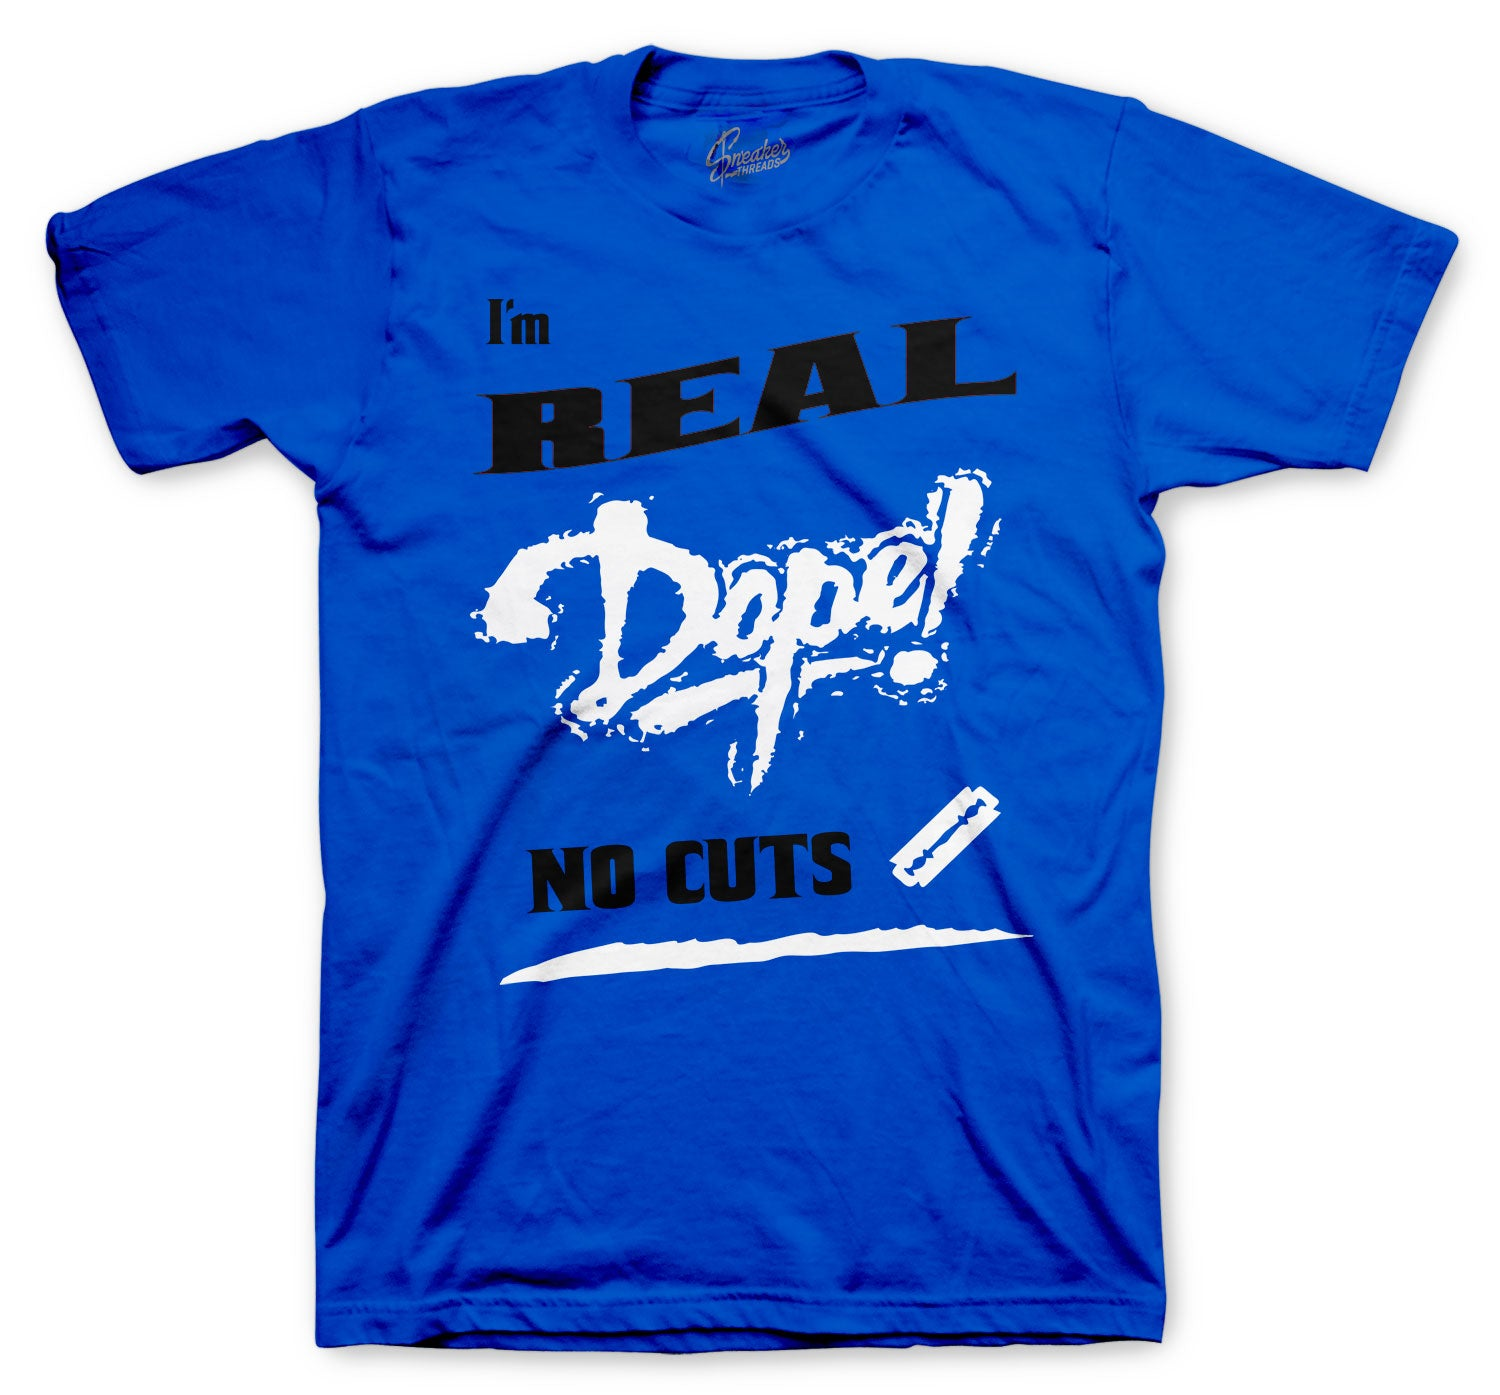 Jordan 14 Hyper Royal Shirt - No Cuts - Royal